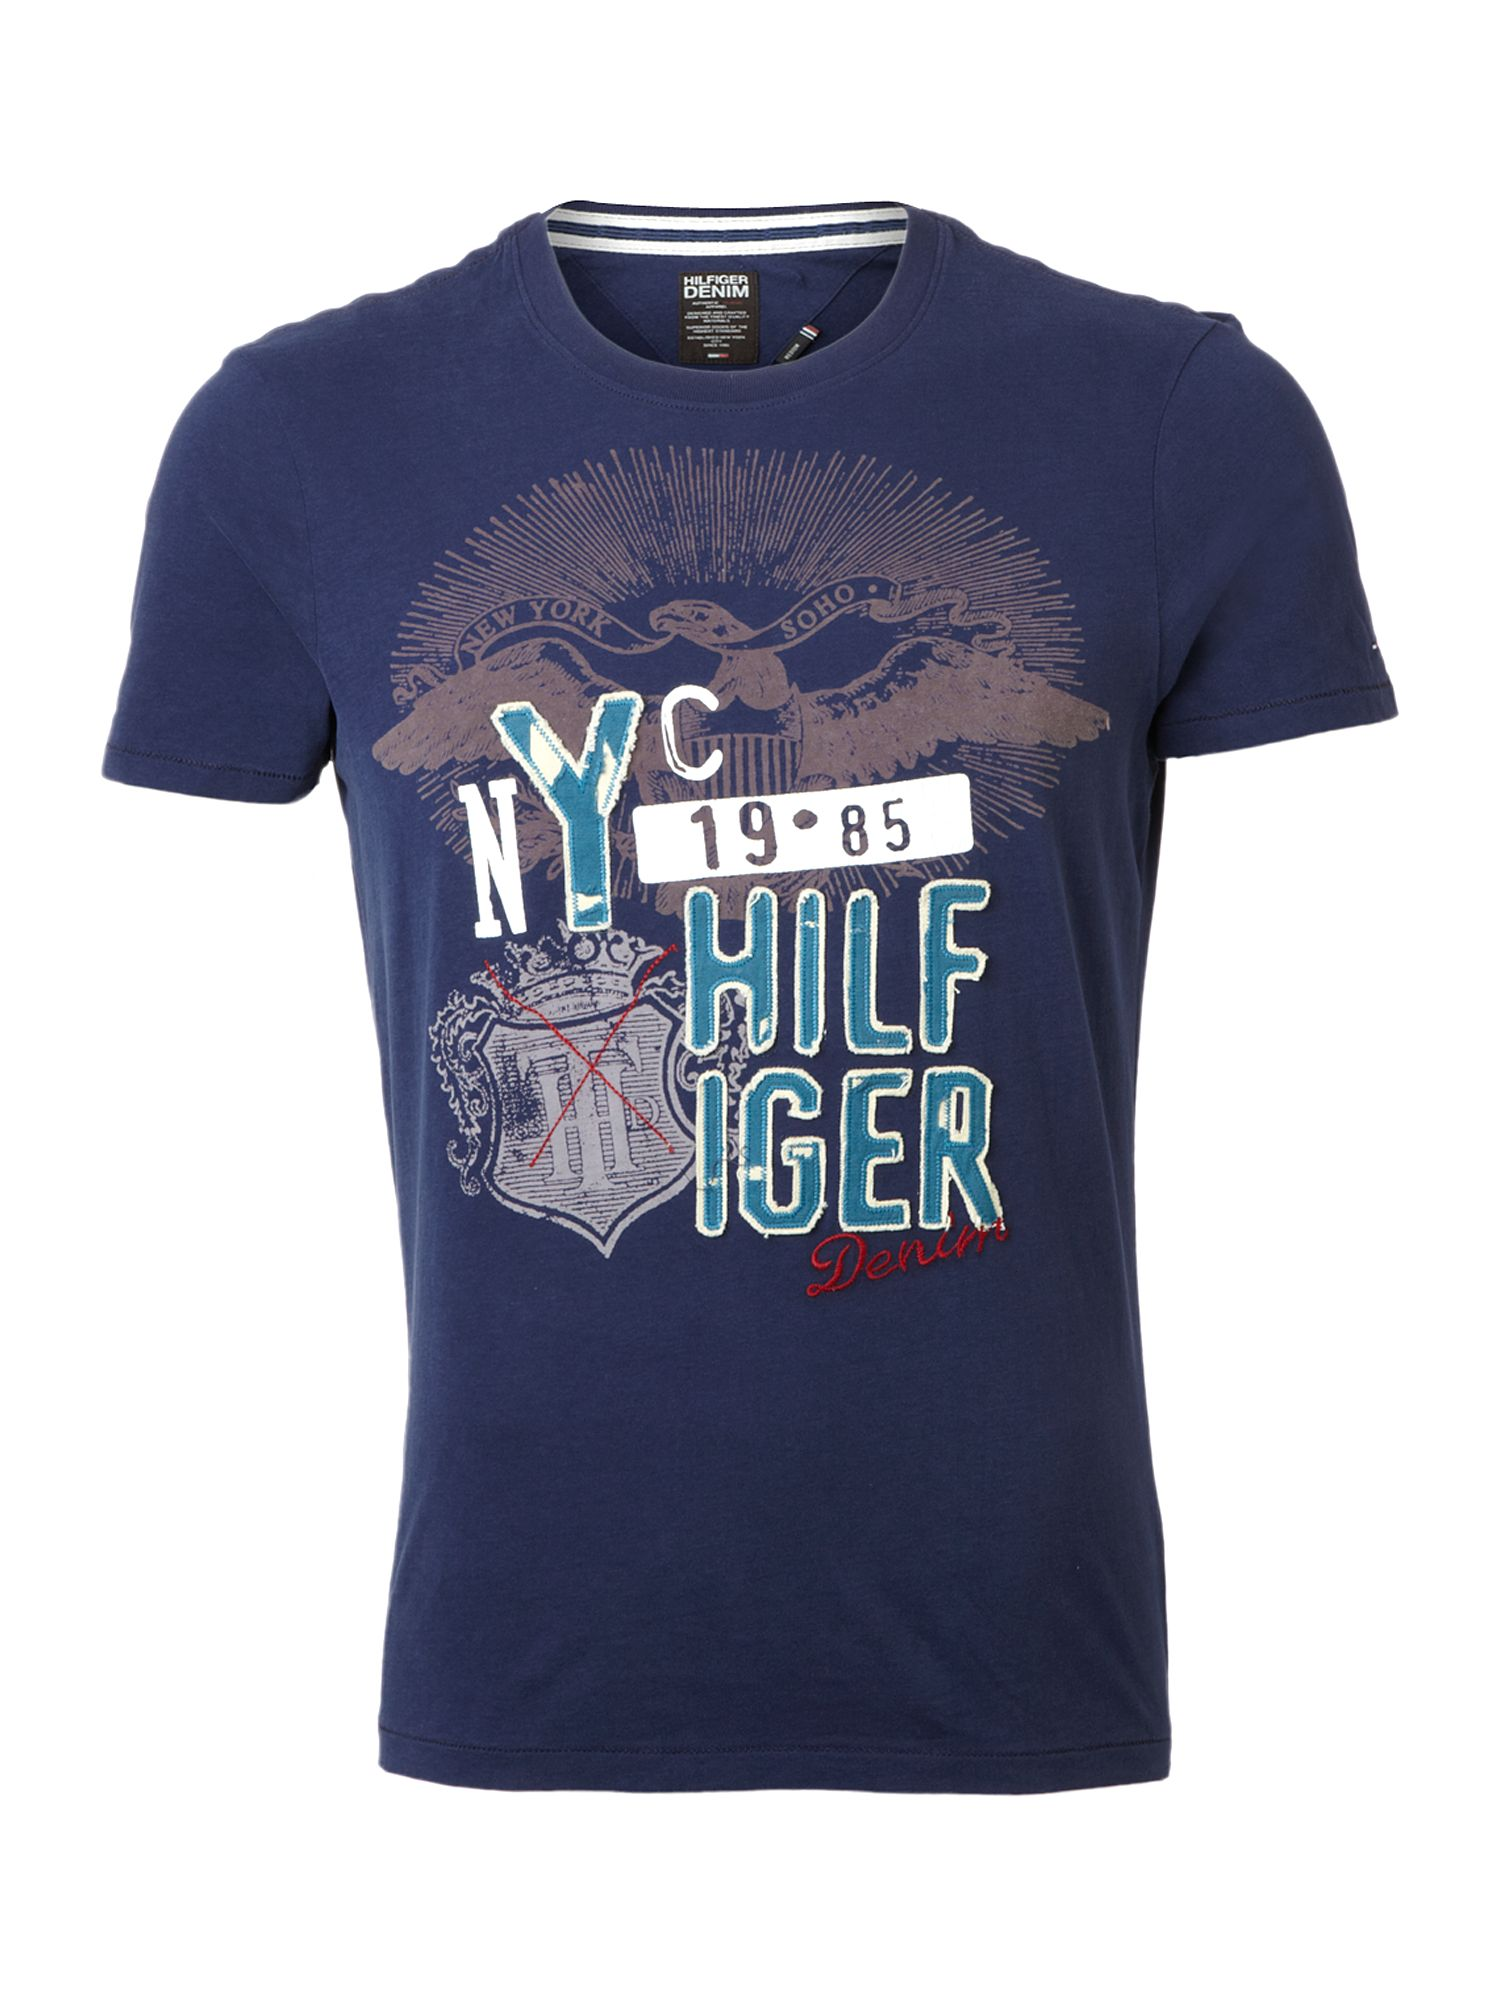 Tommy Hilfiger Eli cotton T-shirt Blue product image